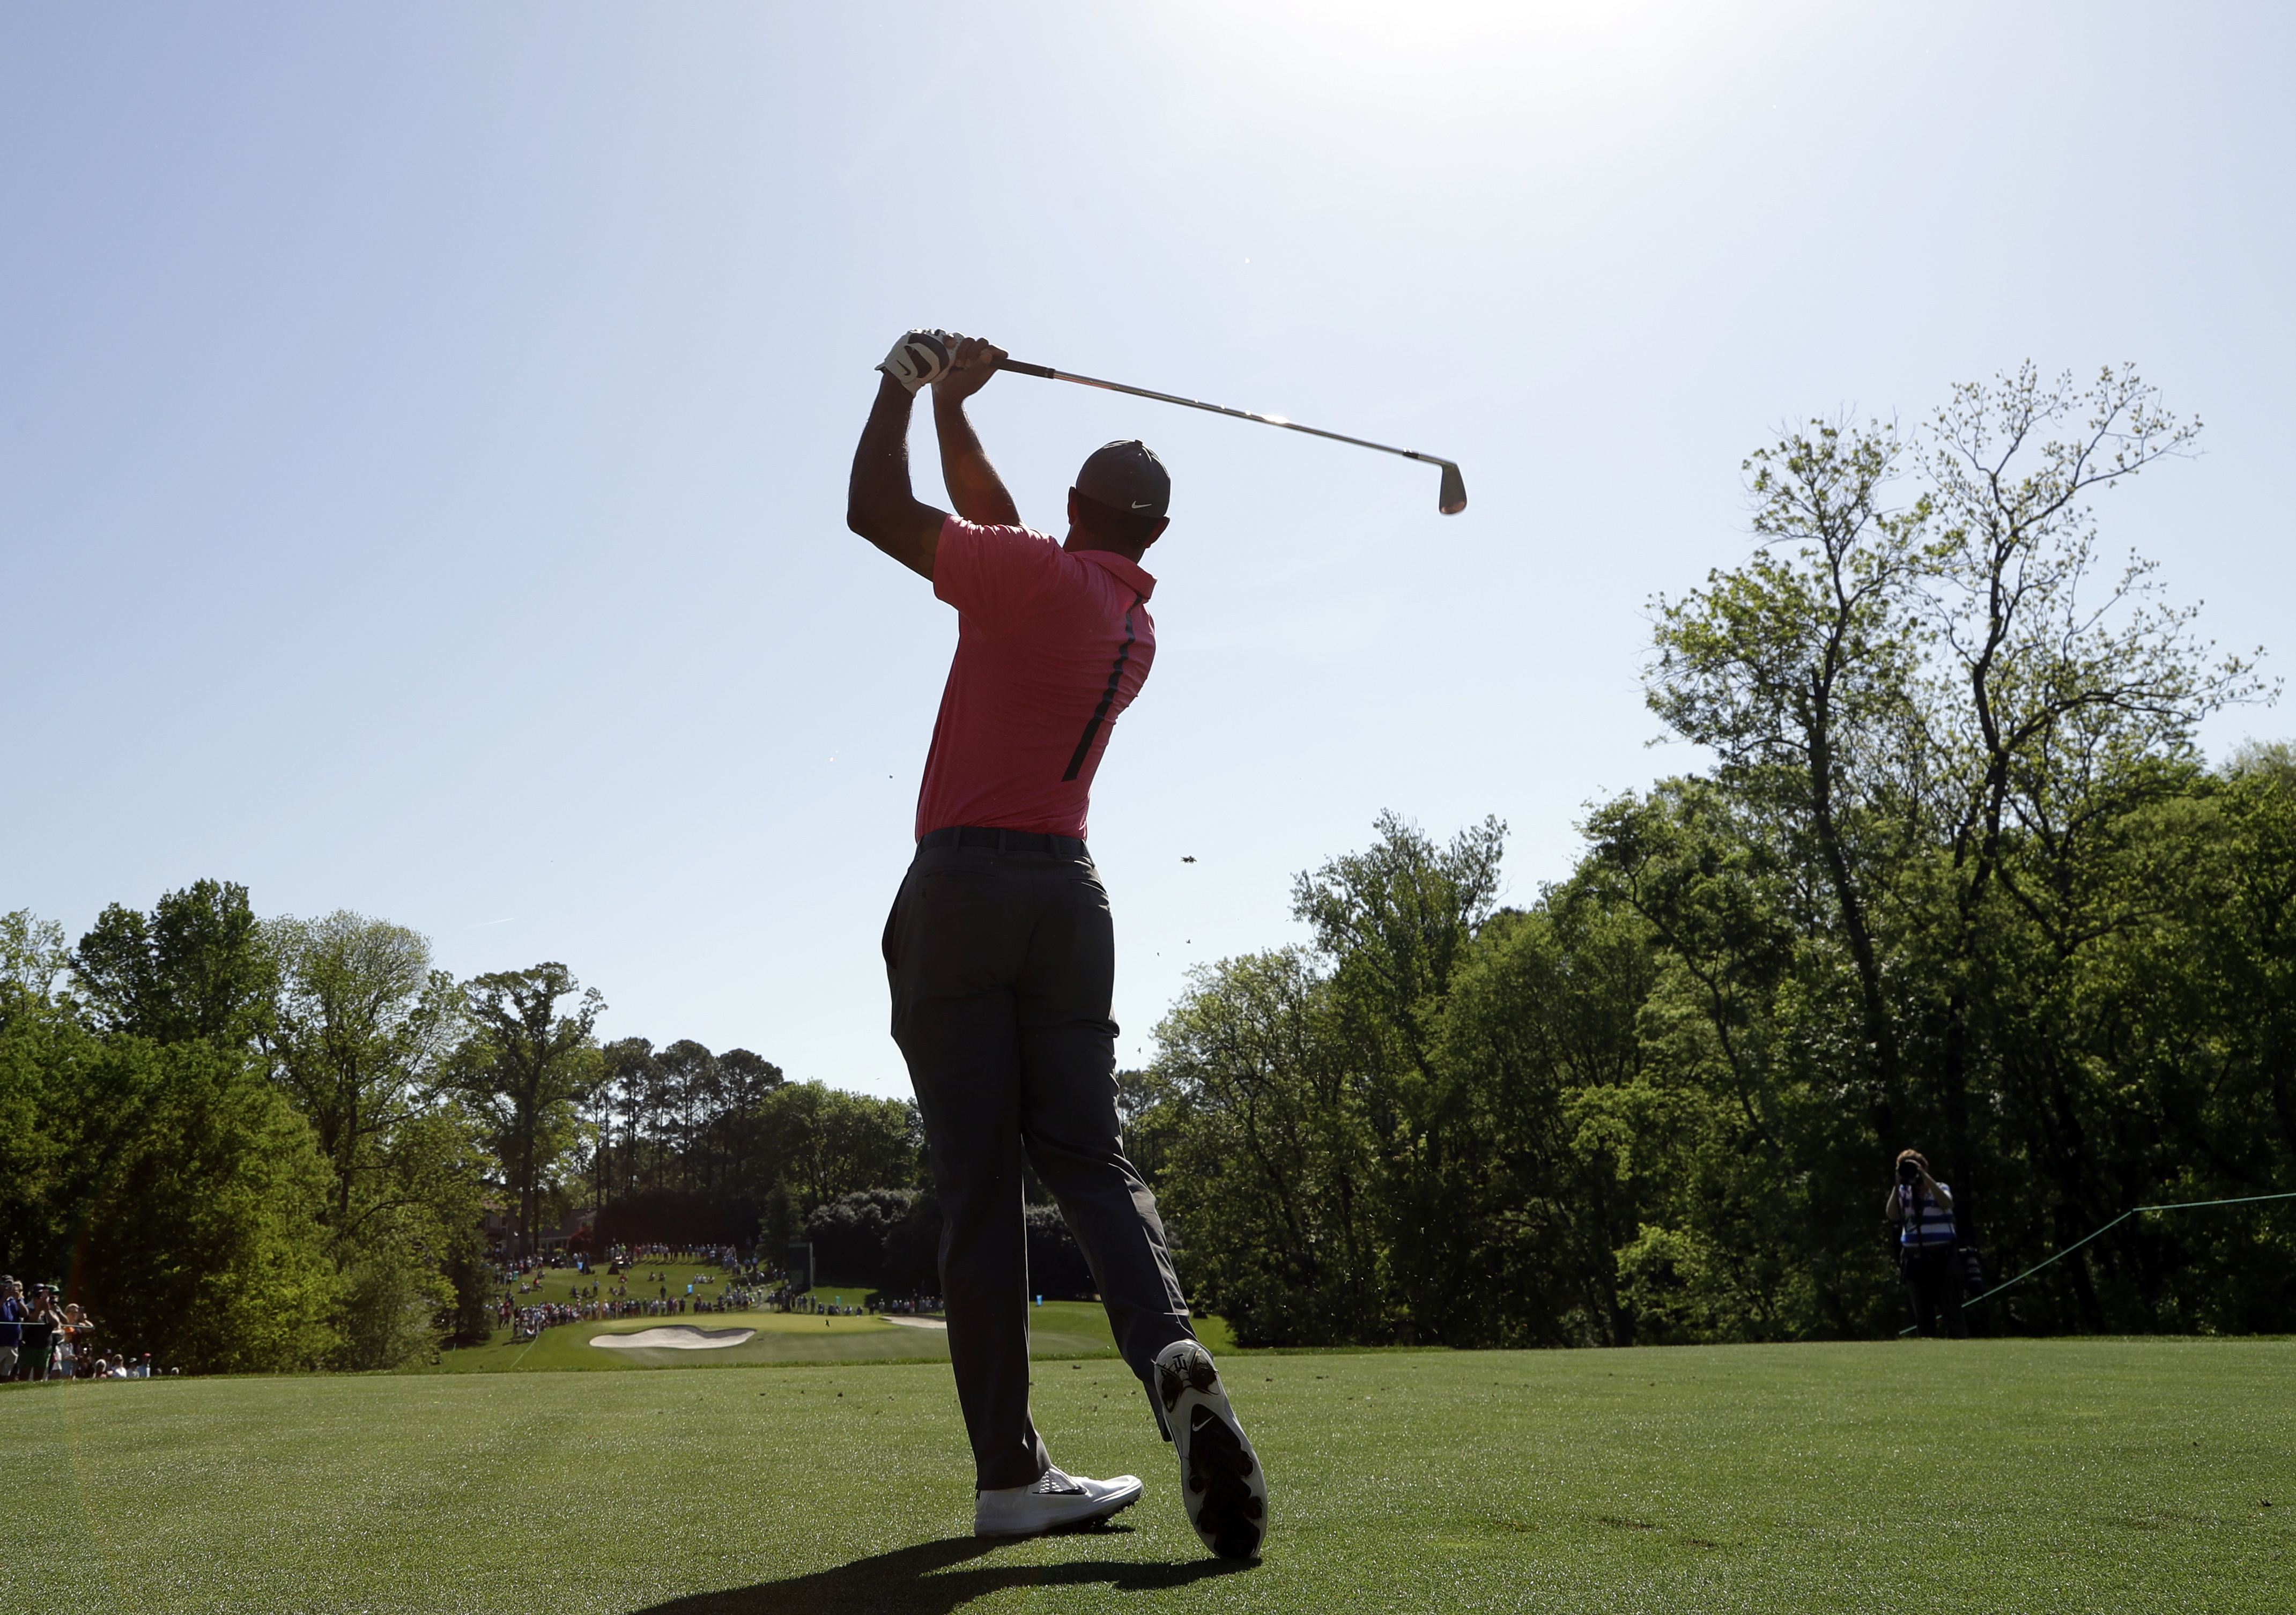 "<div class=""meta image-caption""><div class=""origin-logo origin-image ap""><span>AP</span></div><span class=""caption-text"">Tiger Woods watches his tee shot on the 13th hole during the pro-am of the Wells Fargo Championship golf tournament at Quail Hollow Club in Charlotte. (Chuck Burton)</span></div>"